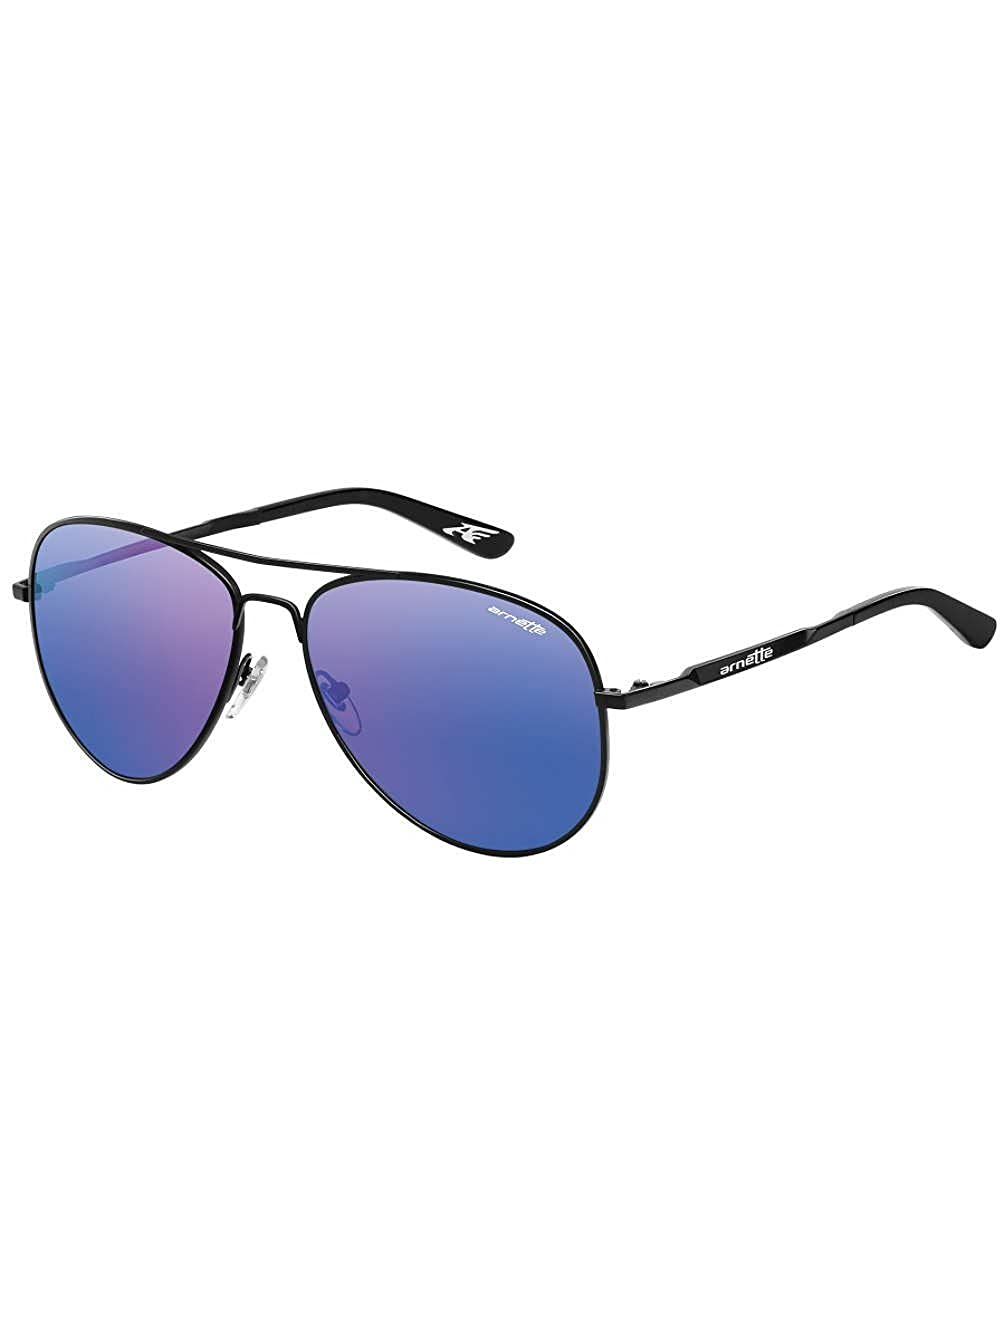 Amazon.com: Arnette anteojos De Sol Trooper, negro: Clothing